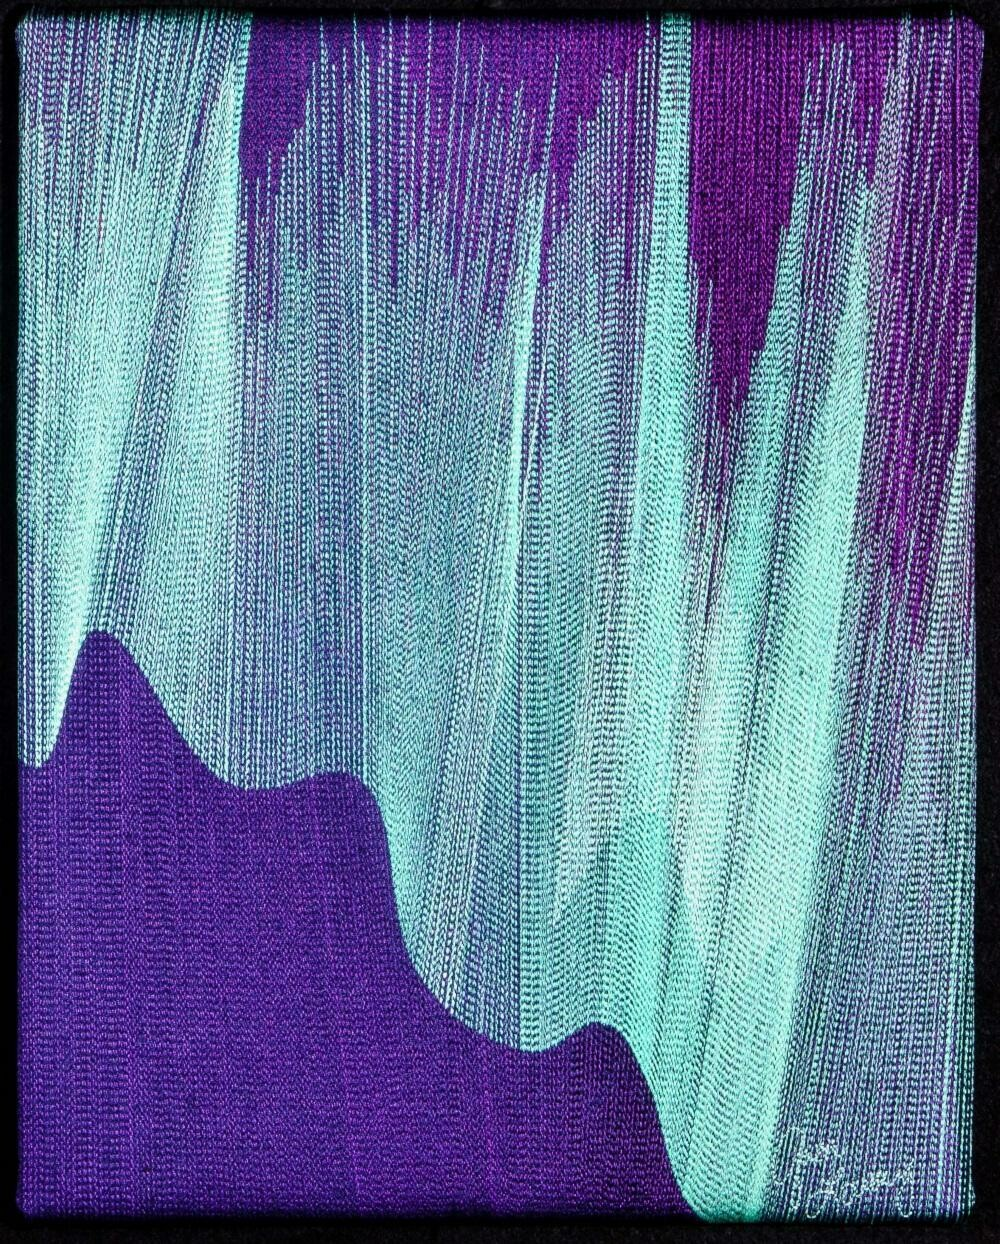 Machine stitching on canvas 13 (Title unspecified)